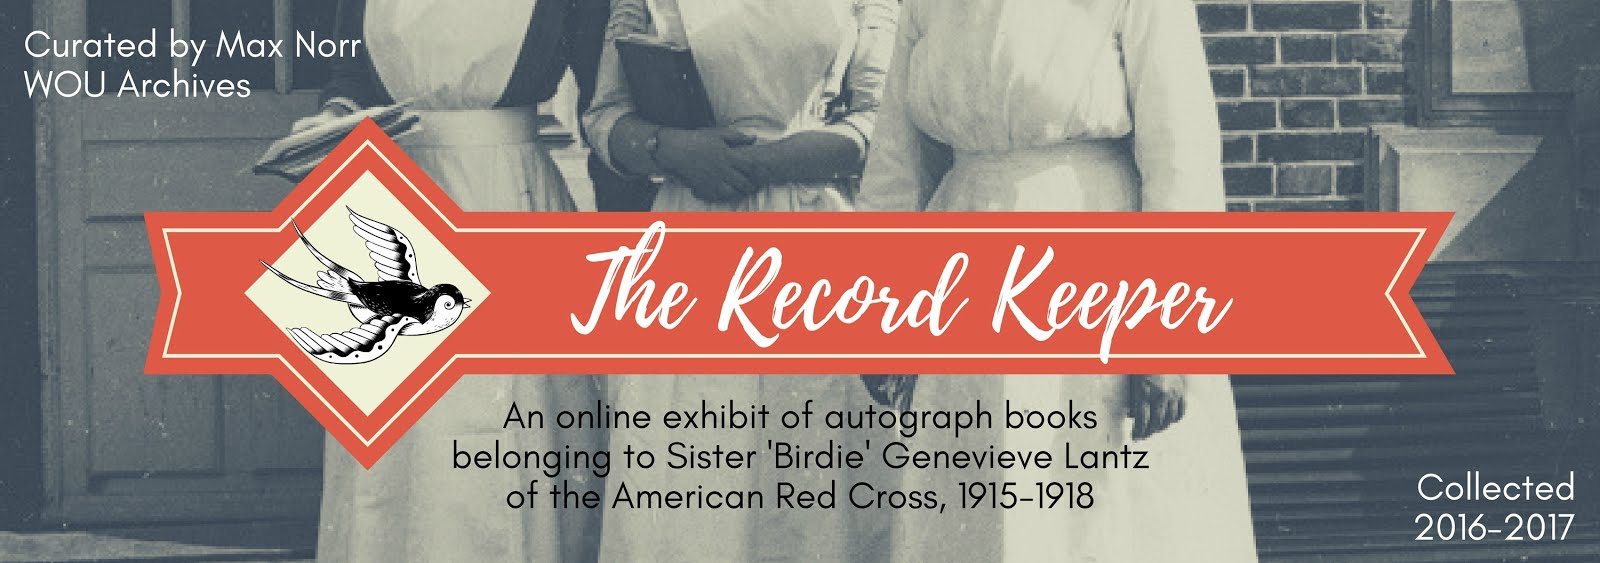 The Record Keeper: A Preservation Project